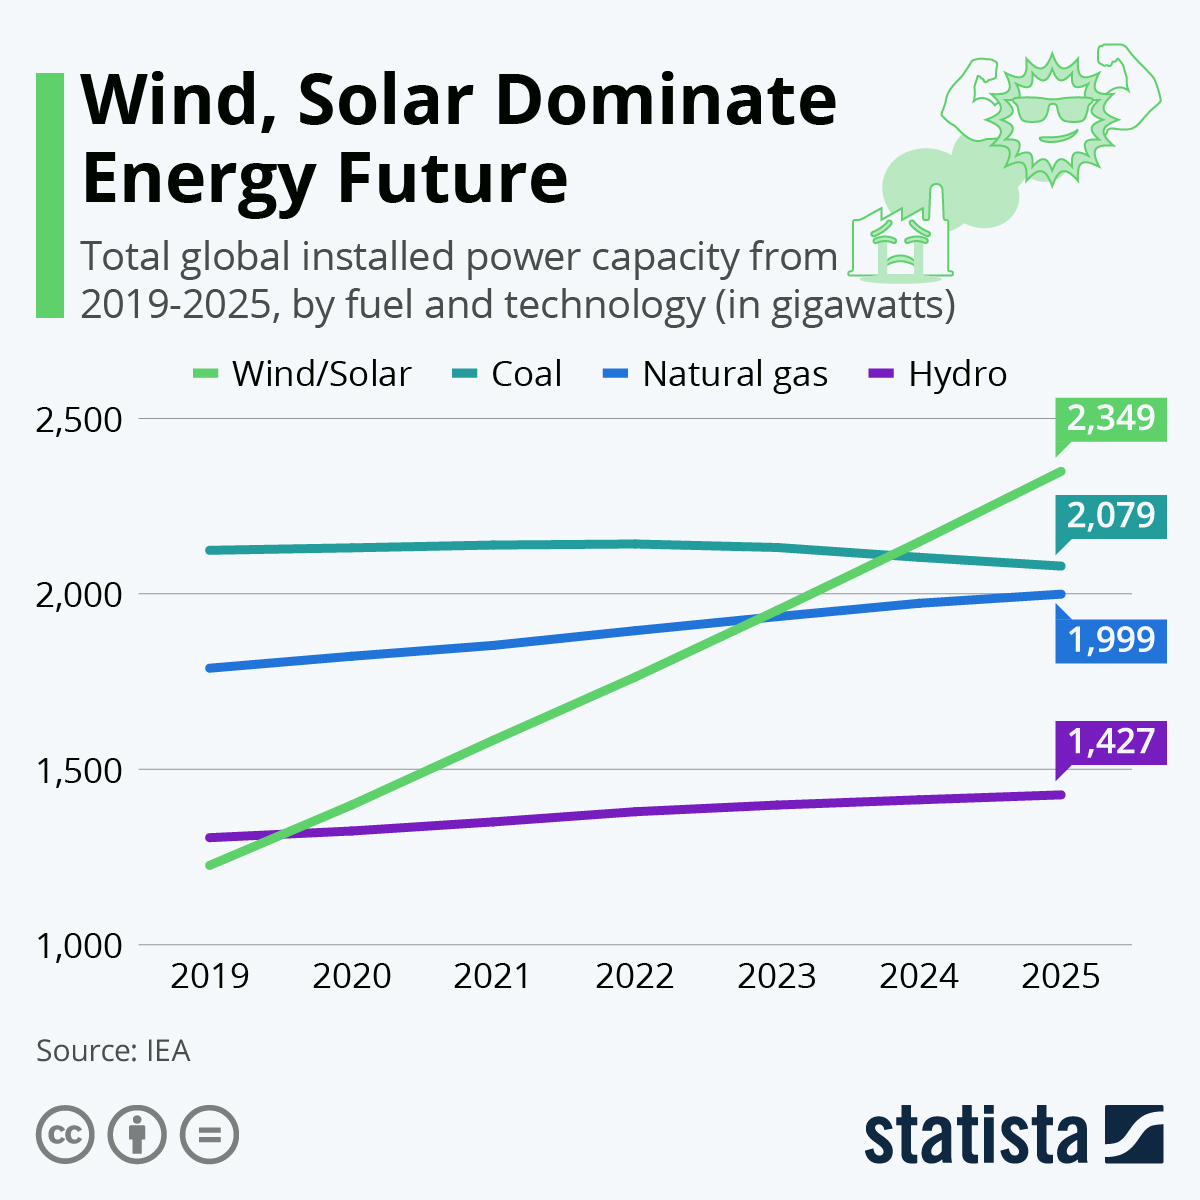 Solar and Wind are the major actors in the possible future scenarios